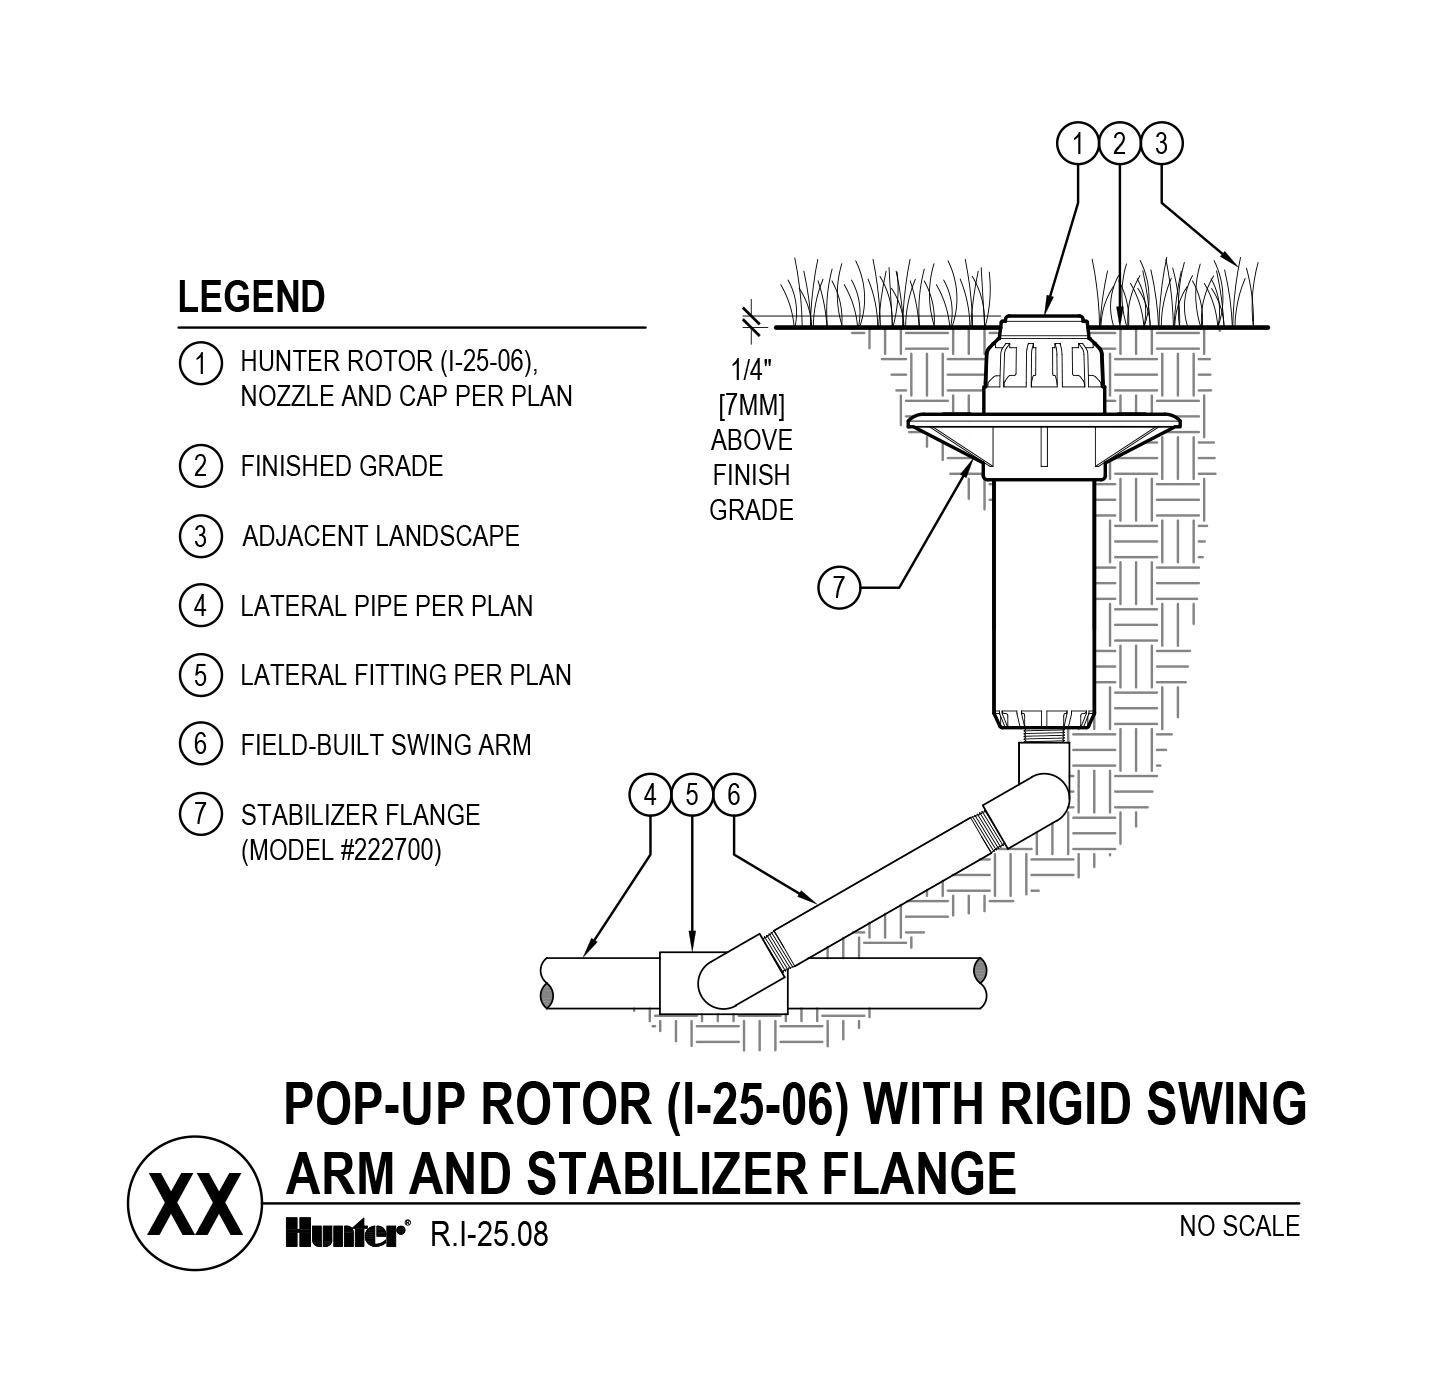 CAD - I-25-06 with swing arm and stabilizer flange